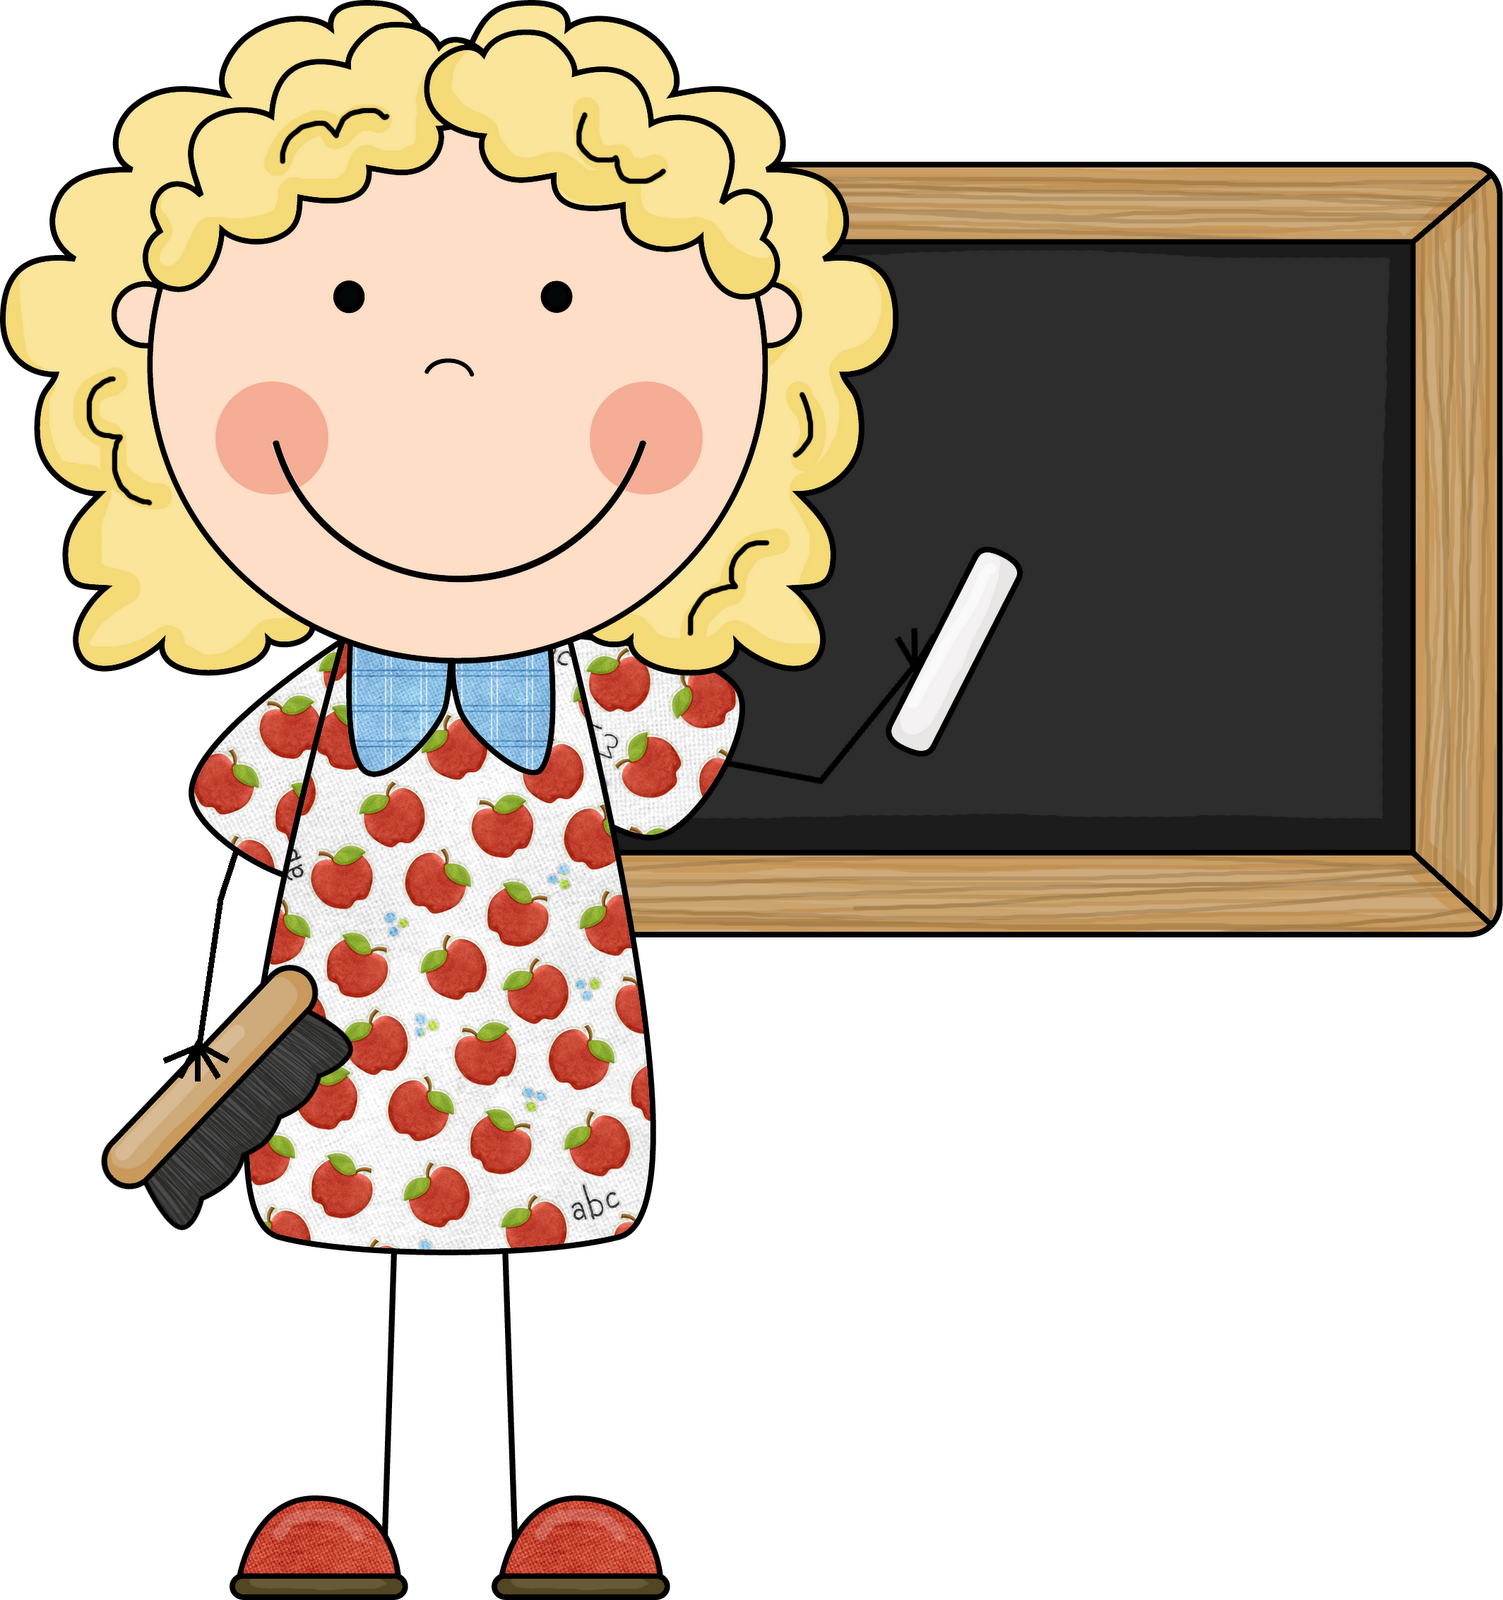 ... -teacher-clip-art-you-can-use-these-free-cliparts-IlH1h0-clipart.png